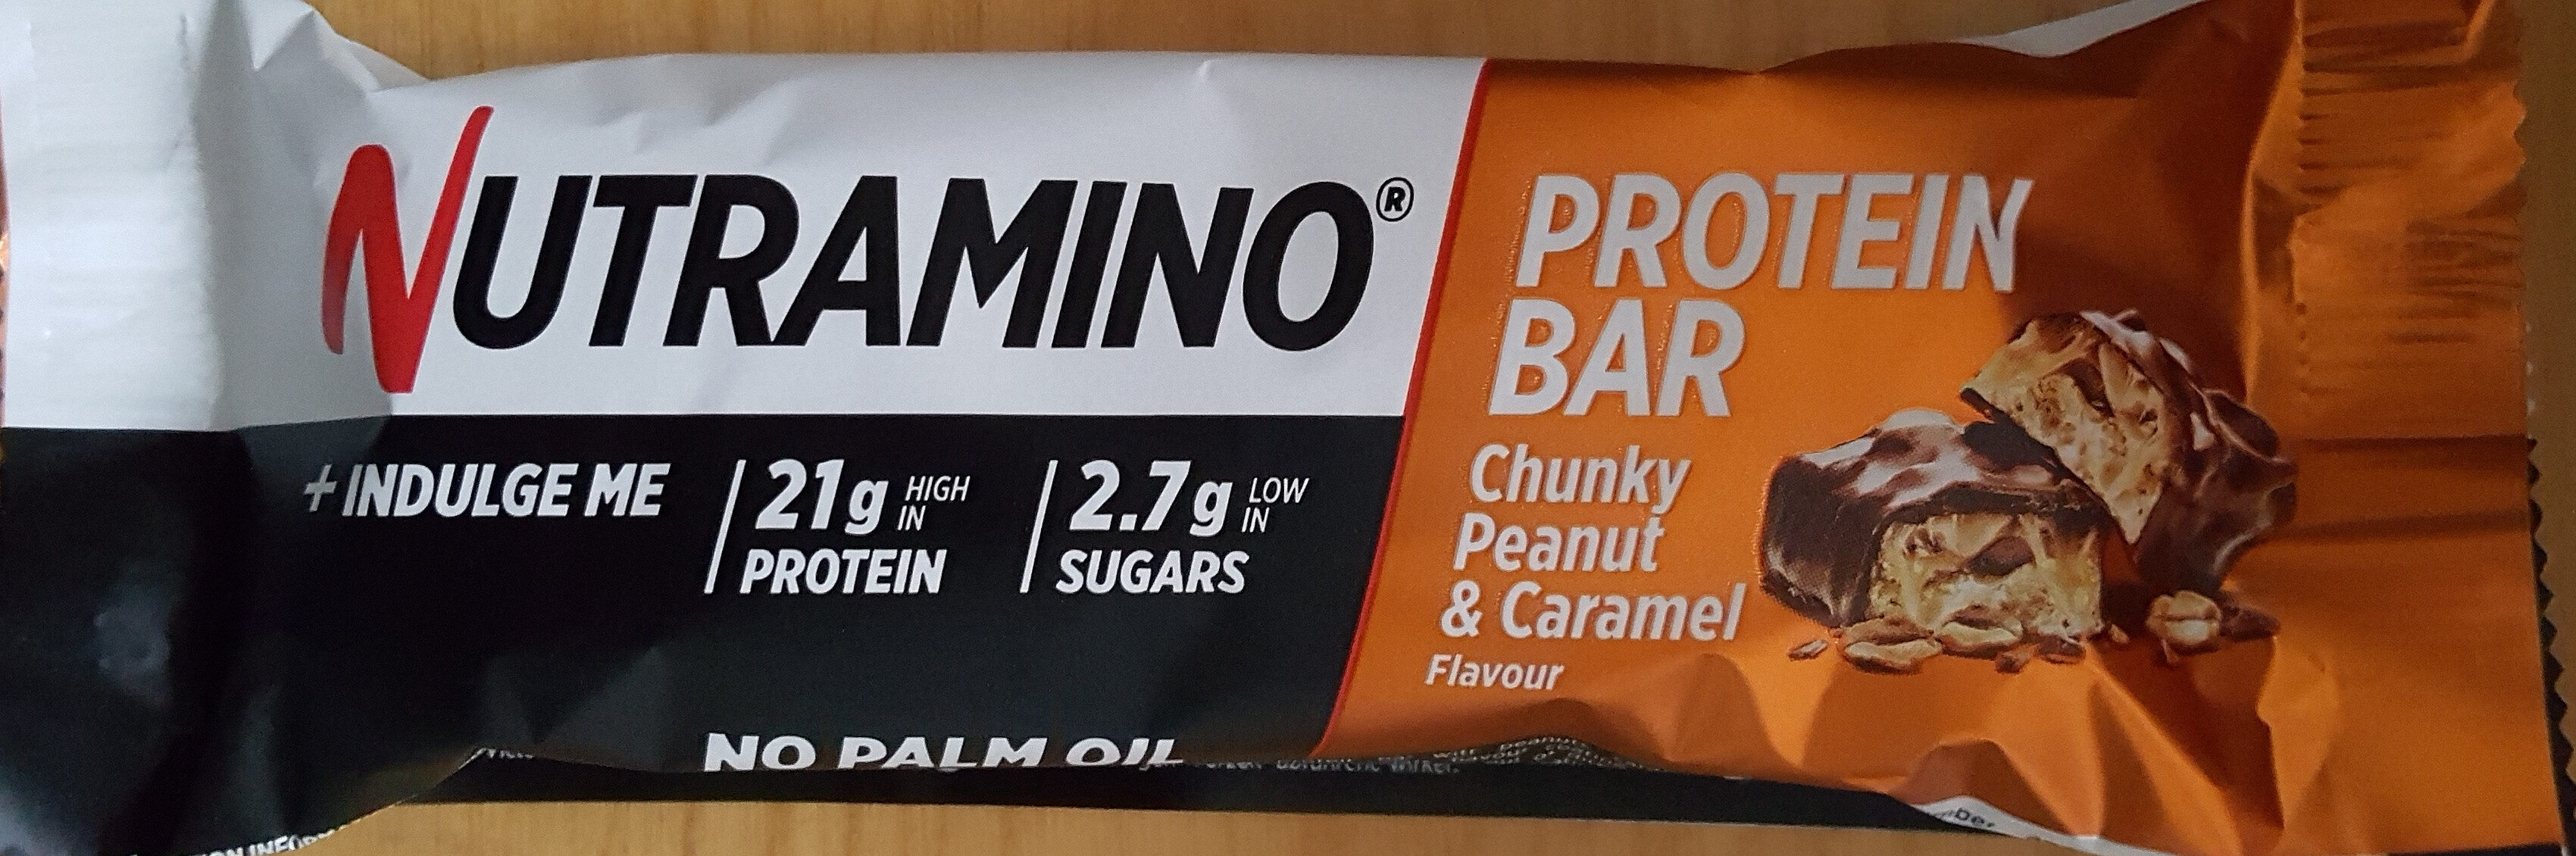 nutramino peanut and caramel